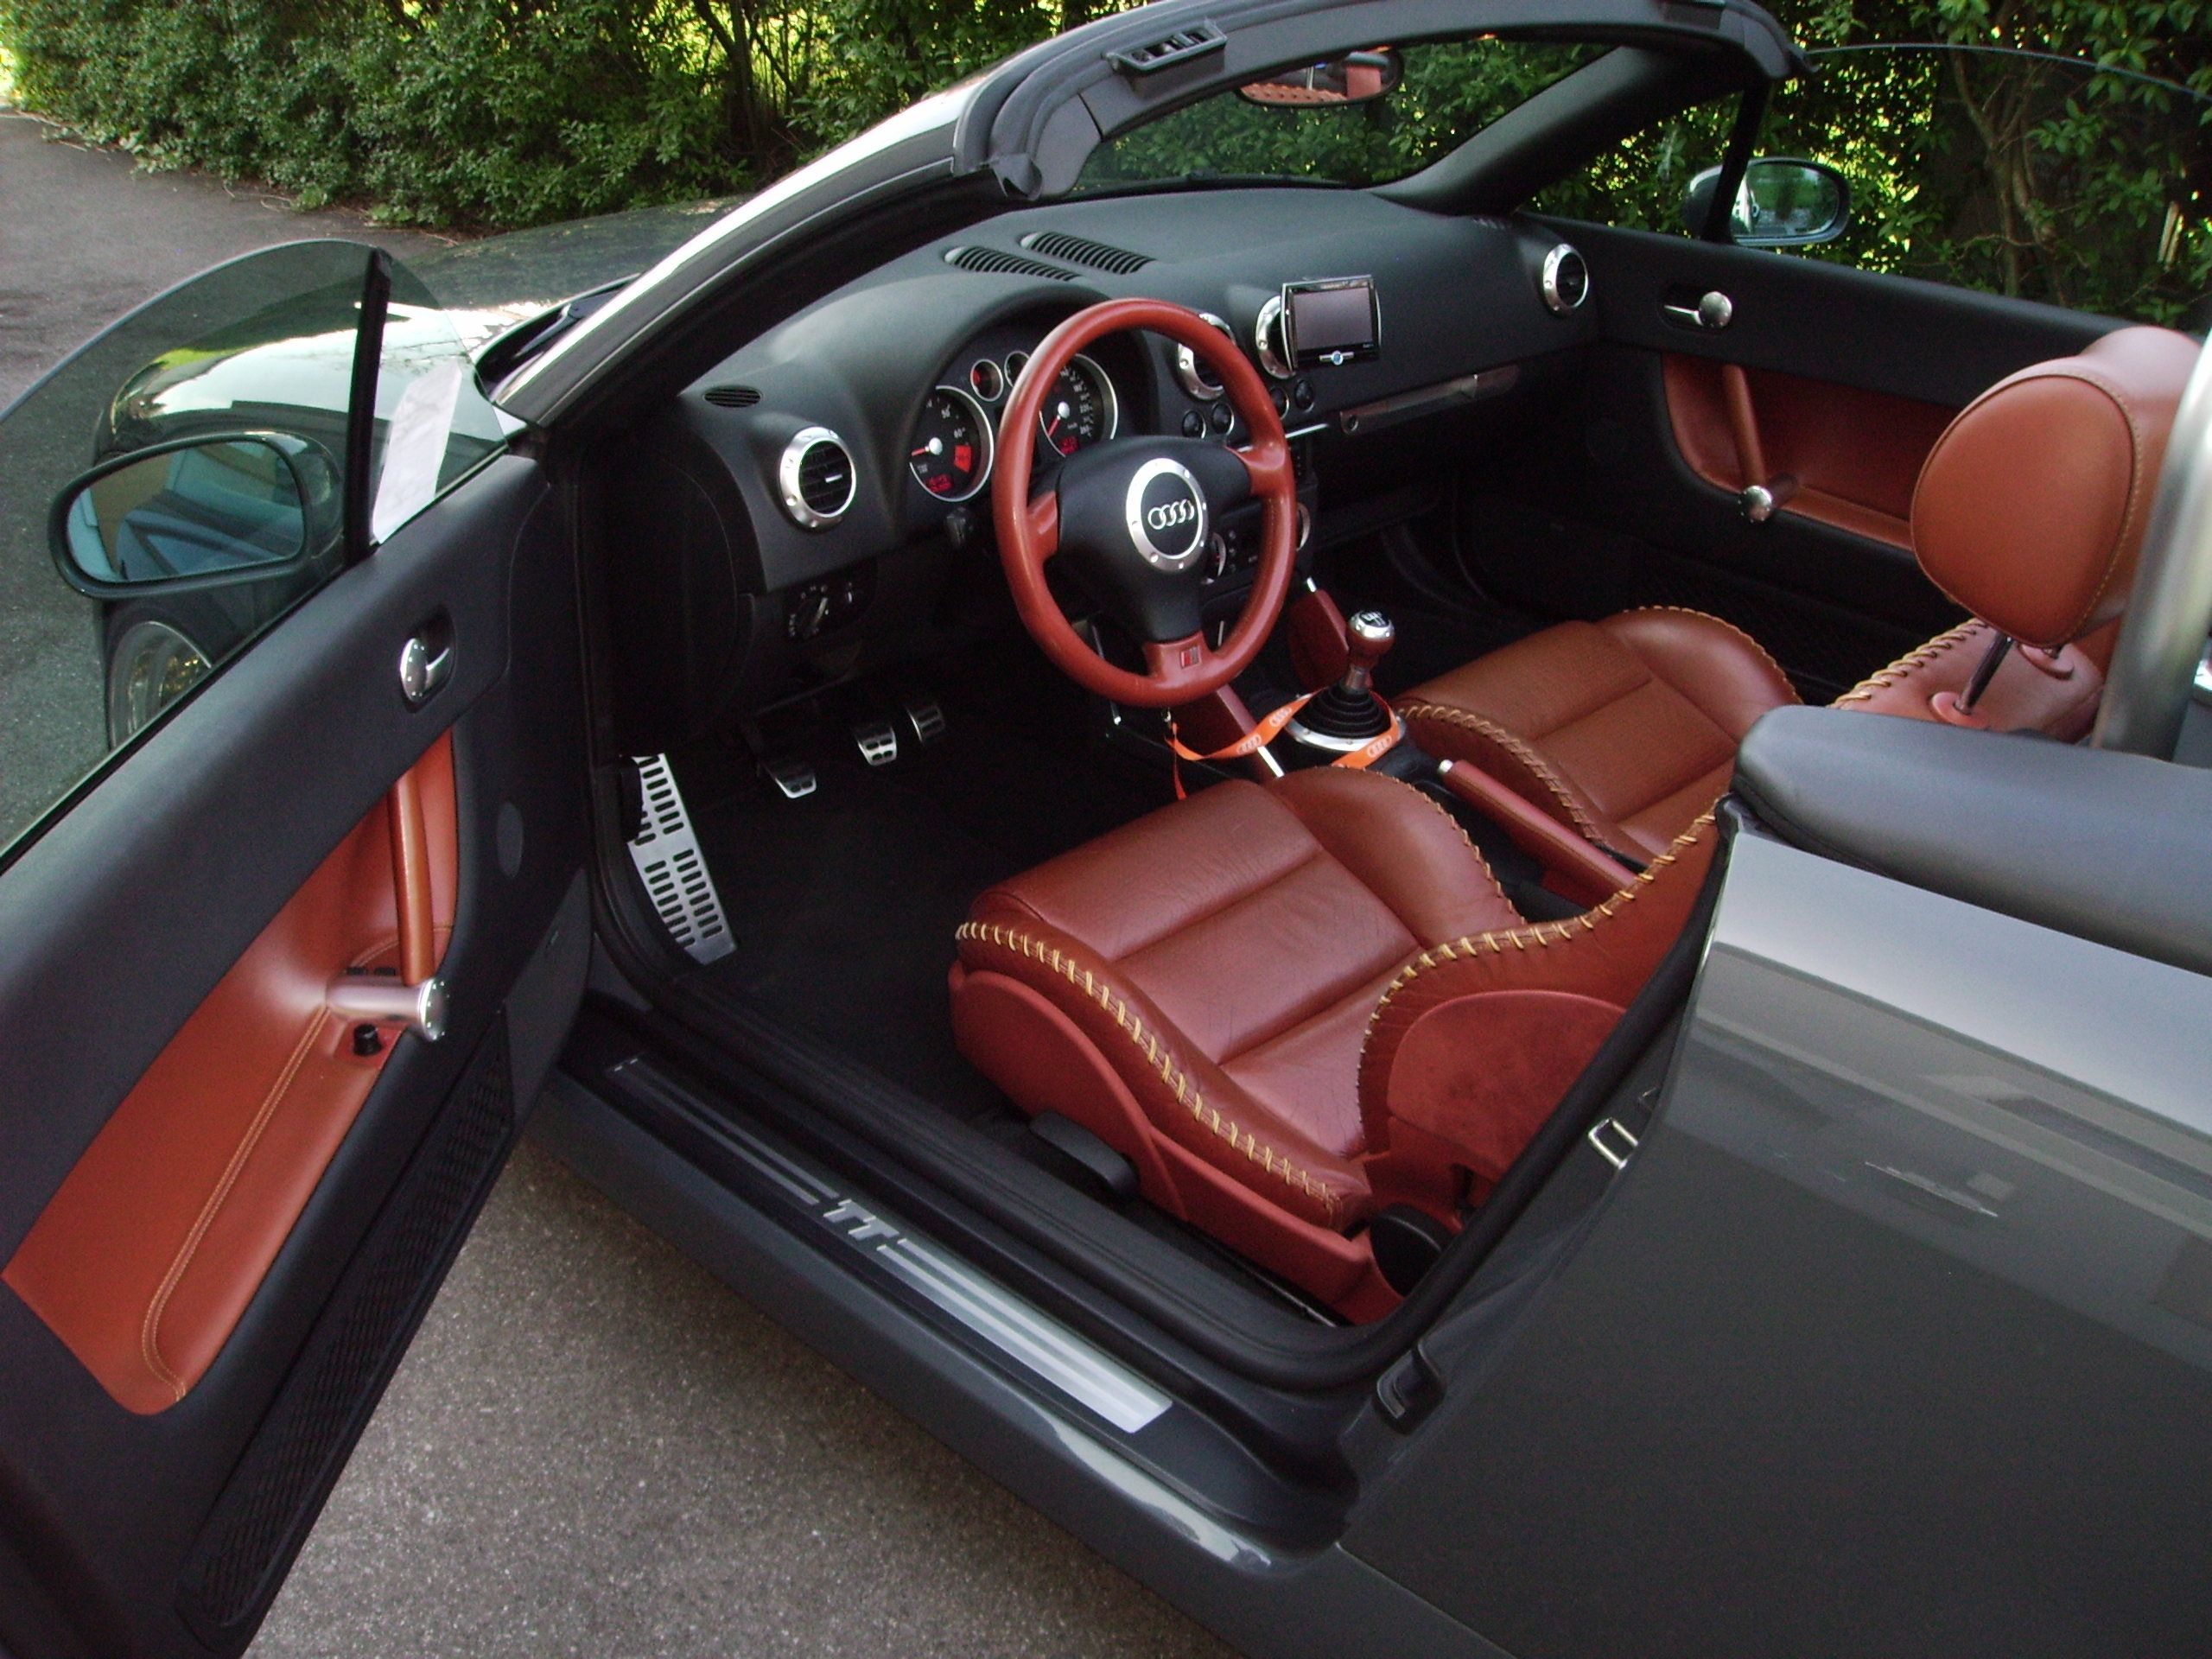 Audi tt roadster is available in the exclusive amber red leather interior with baseball stitching